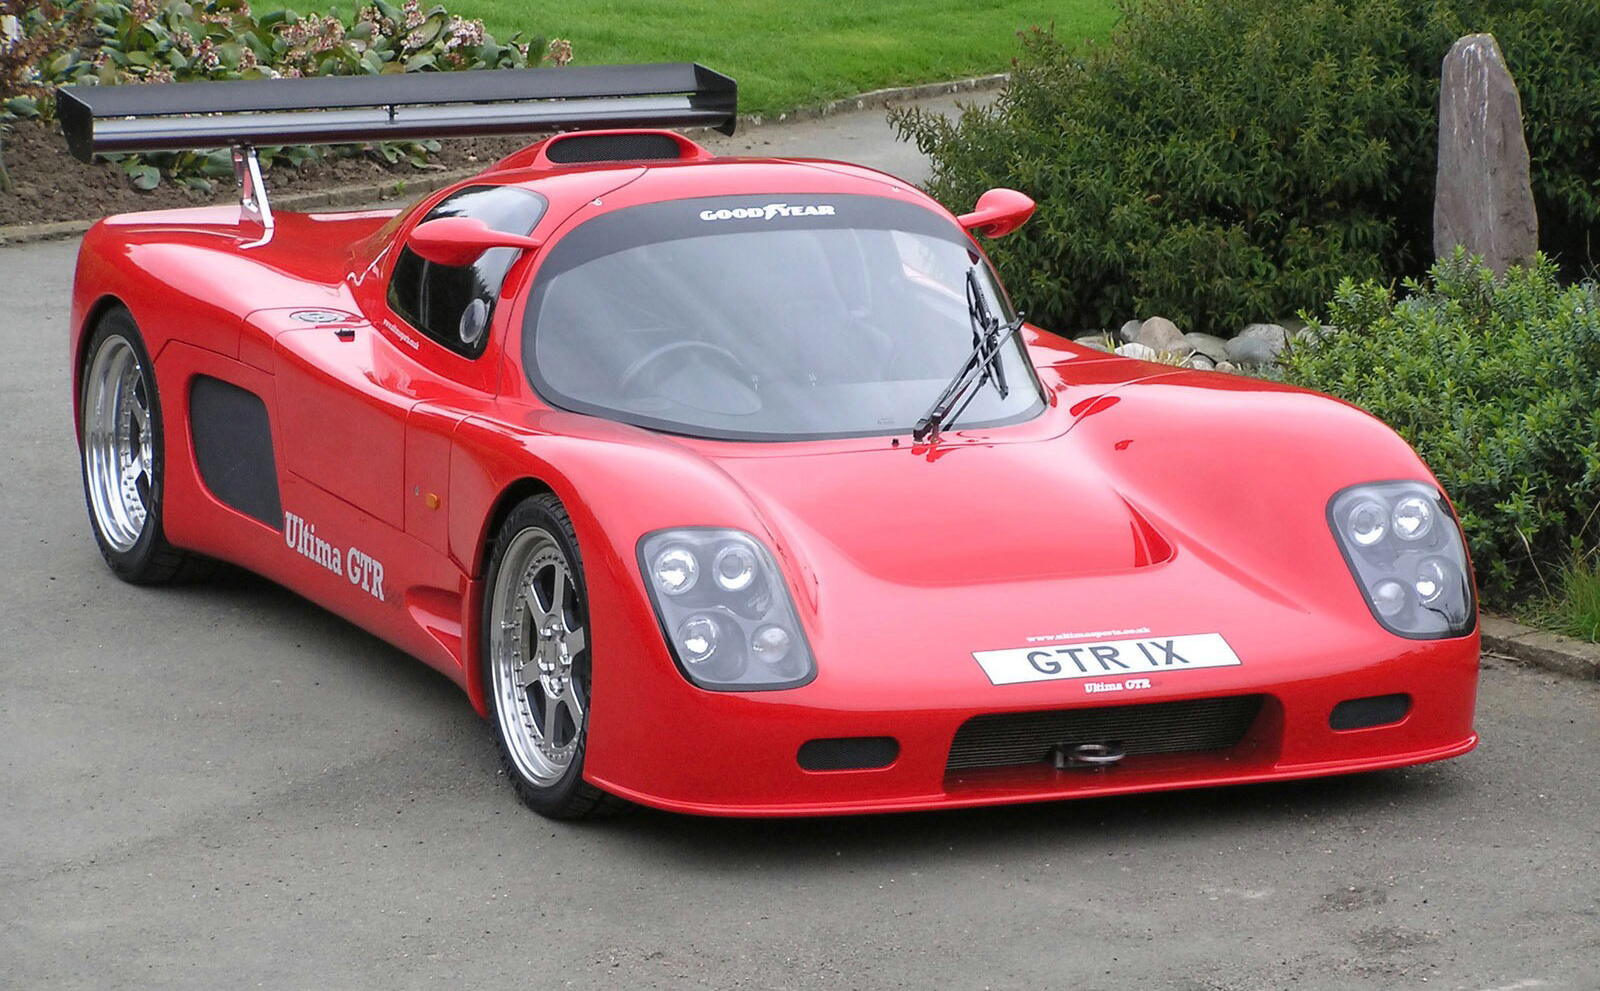 Fastest Supercar in the World? Try Quickest: Up close and personal with the Ultima GTR